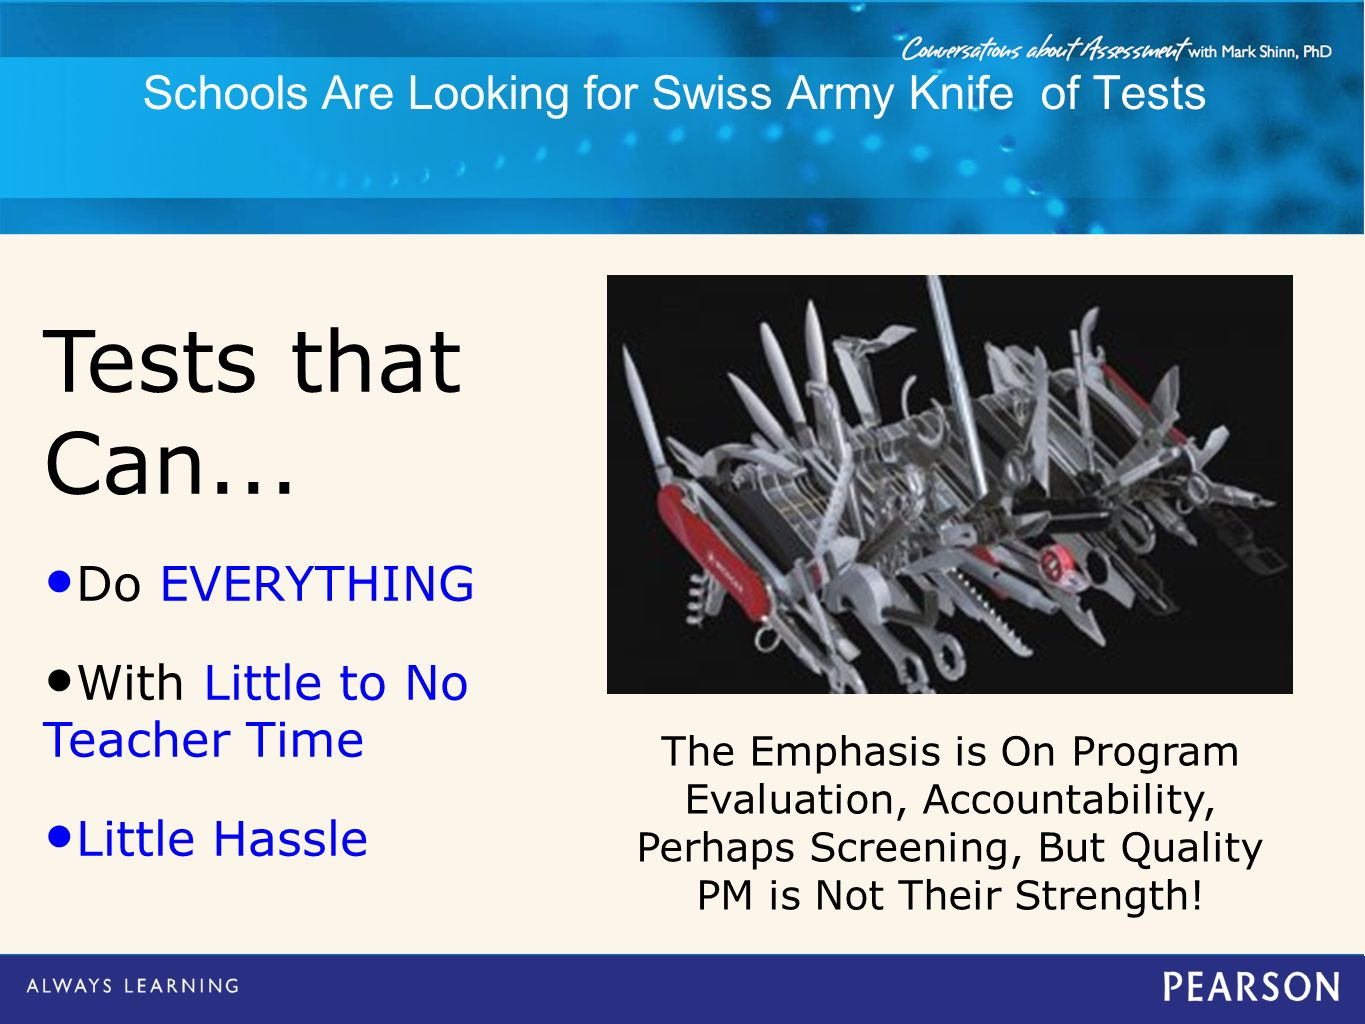 Schools Are Looking for Swiss Army Knife of Tests